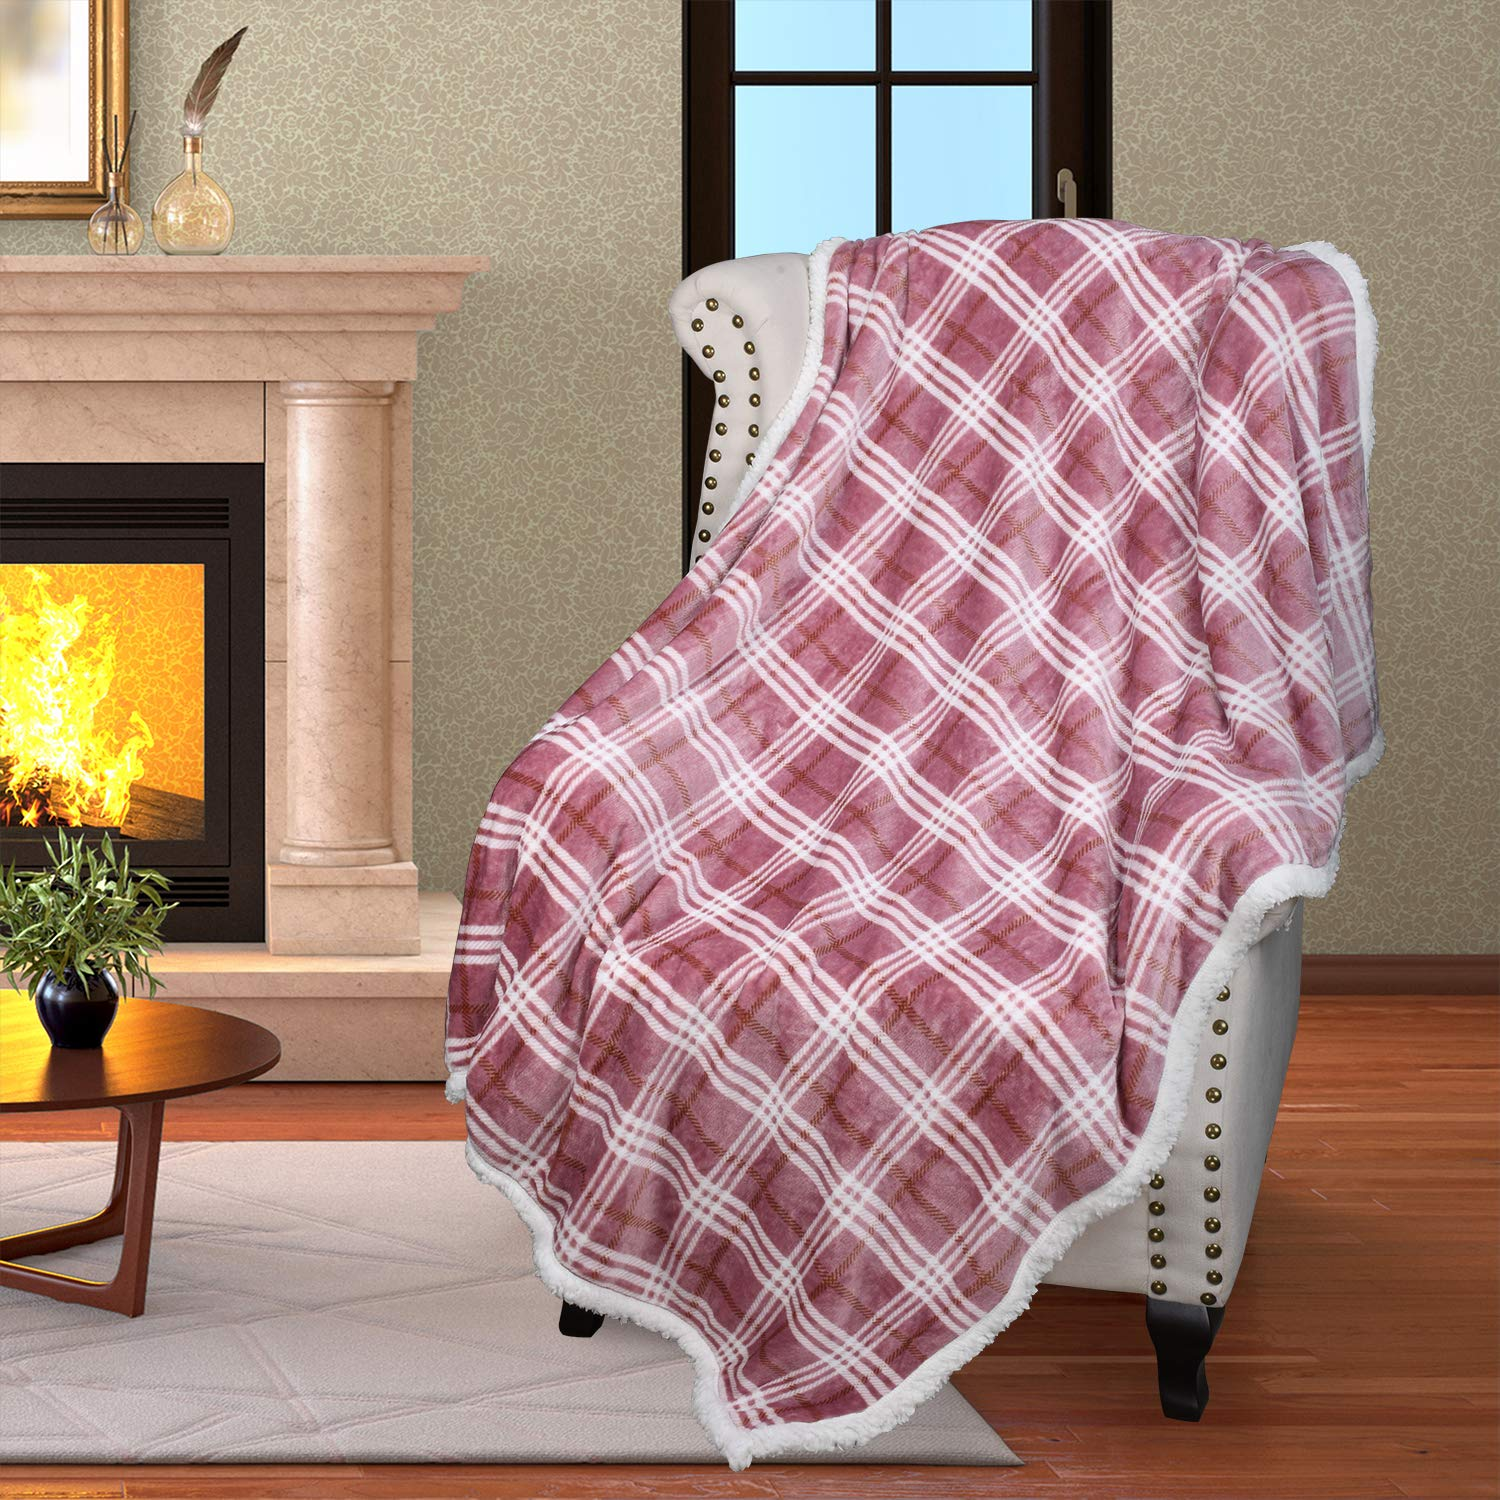 """Plaid Sherpa Throw Blanket,Plush Flannel Throws for Couch and Bed,Super Soft Reversible TV Blanket,Comfy Caring Gift 50""""x60"""",Buffalo Pink"""